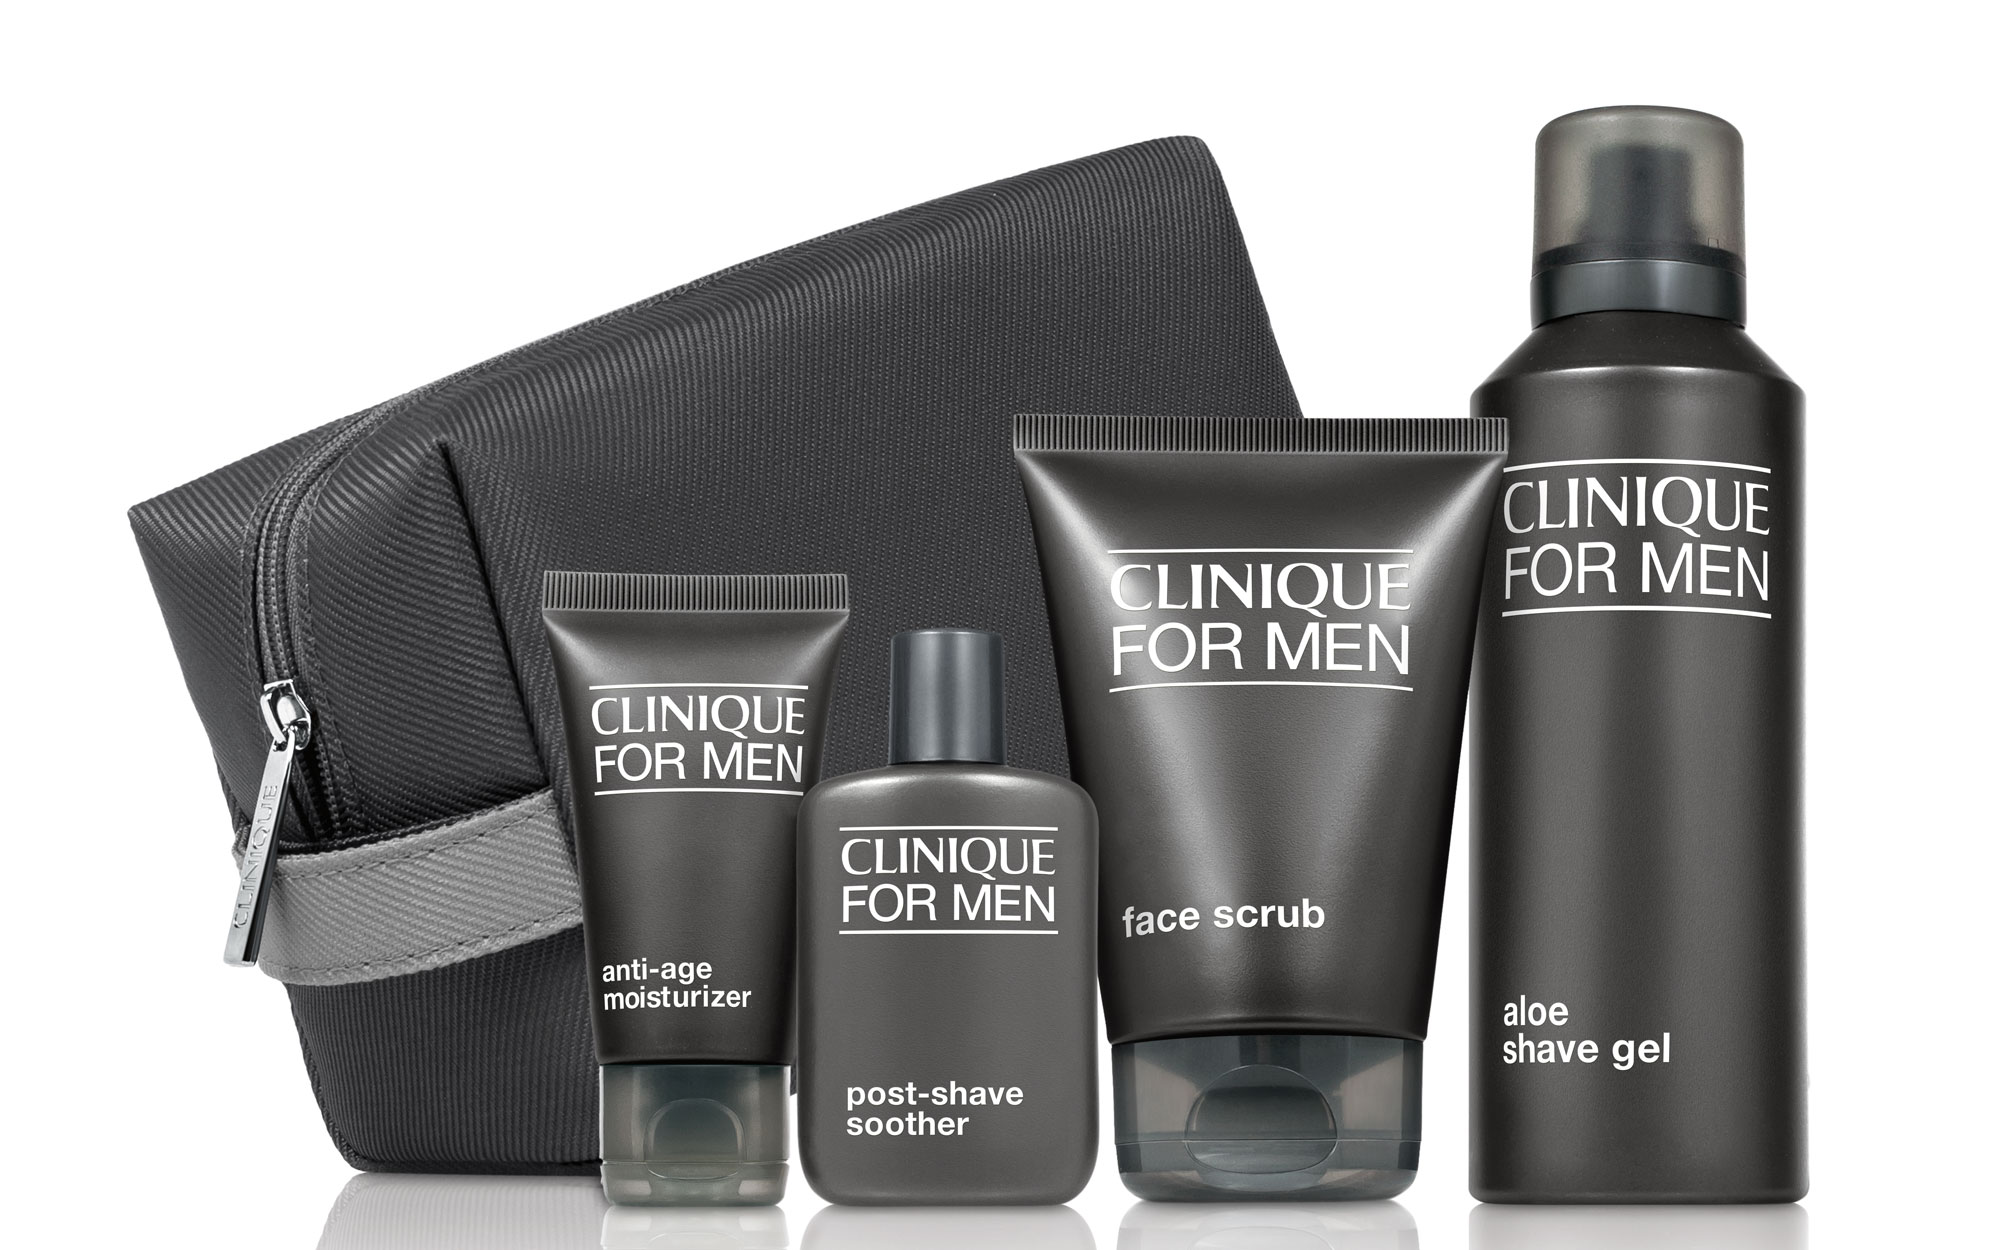 Best Beauty Gifts for Travelers: Clinique for Men Gift Set